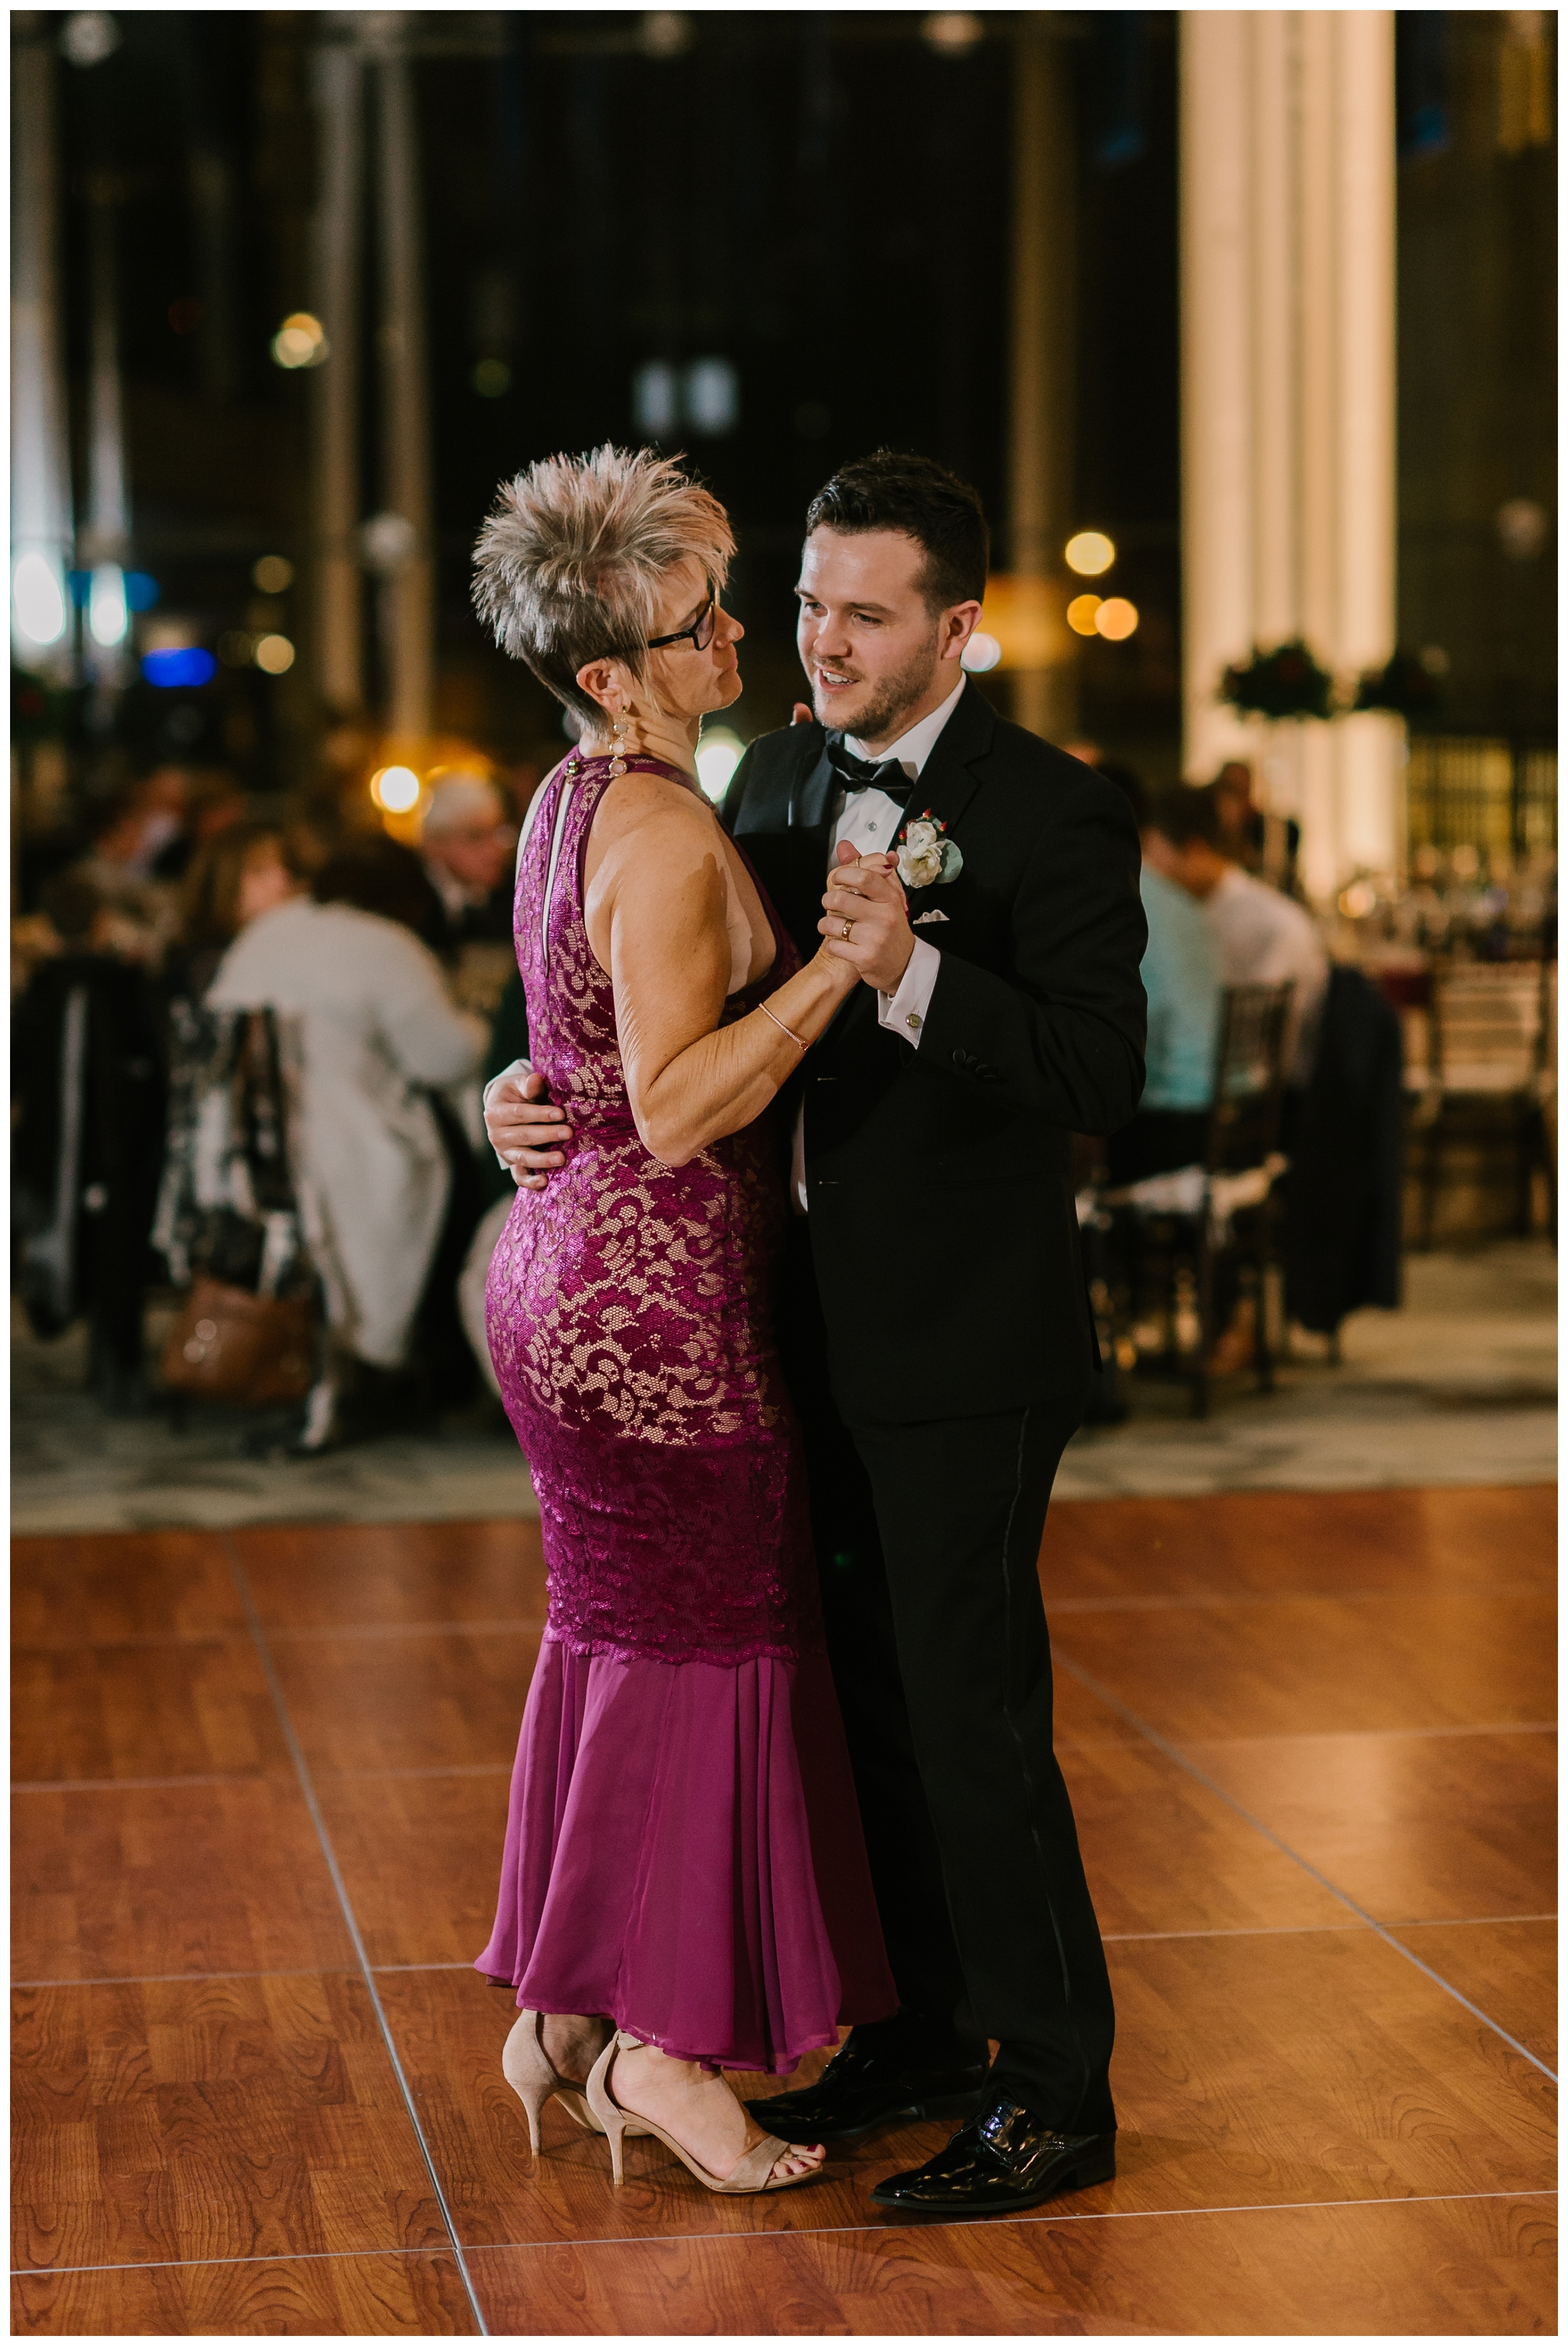 Rebecca_Shehorn_Photography_Indianapolis_Wedding_Photographer_7787.jpg